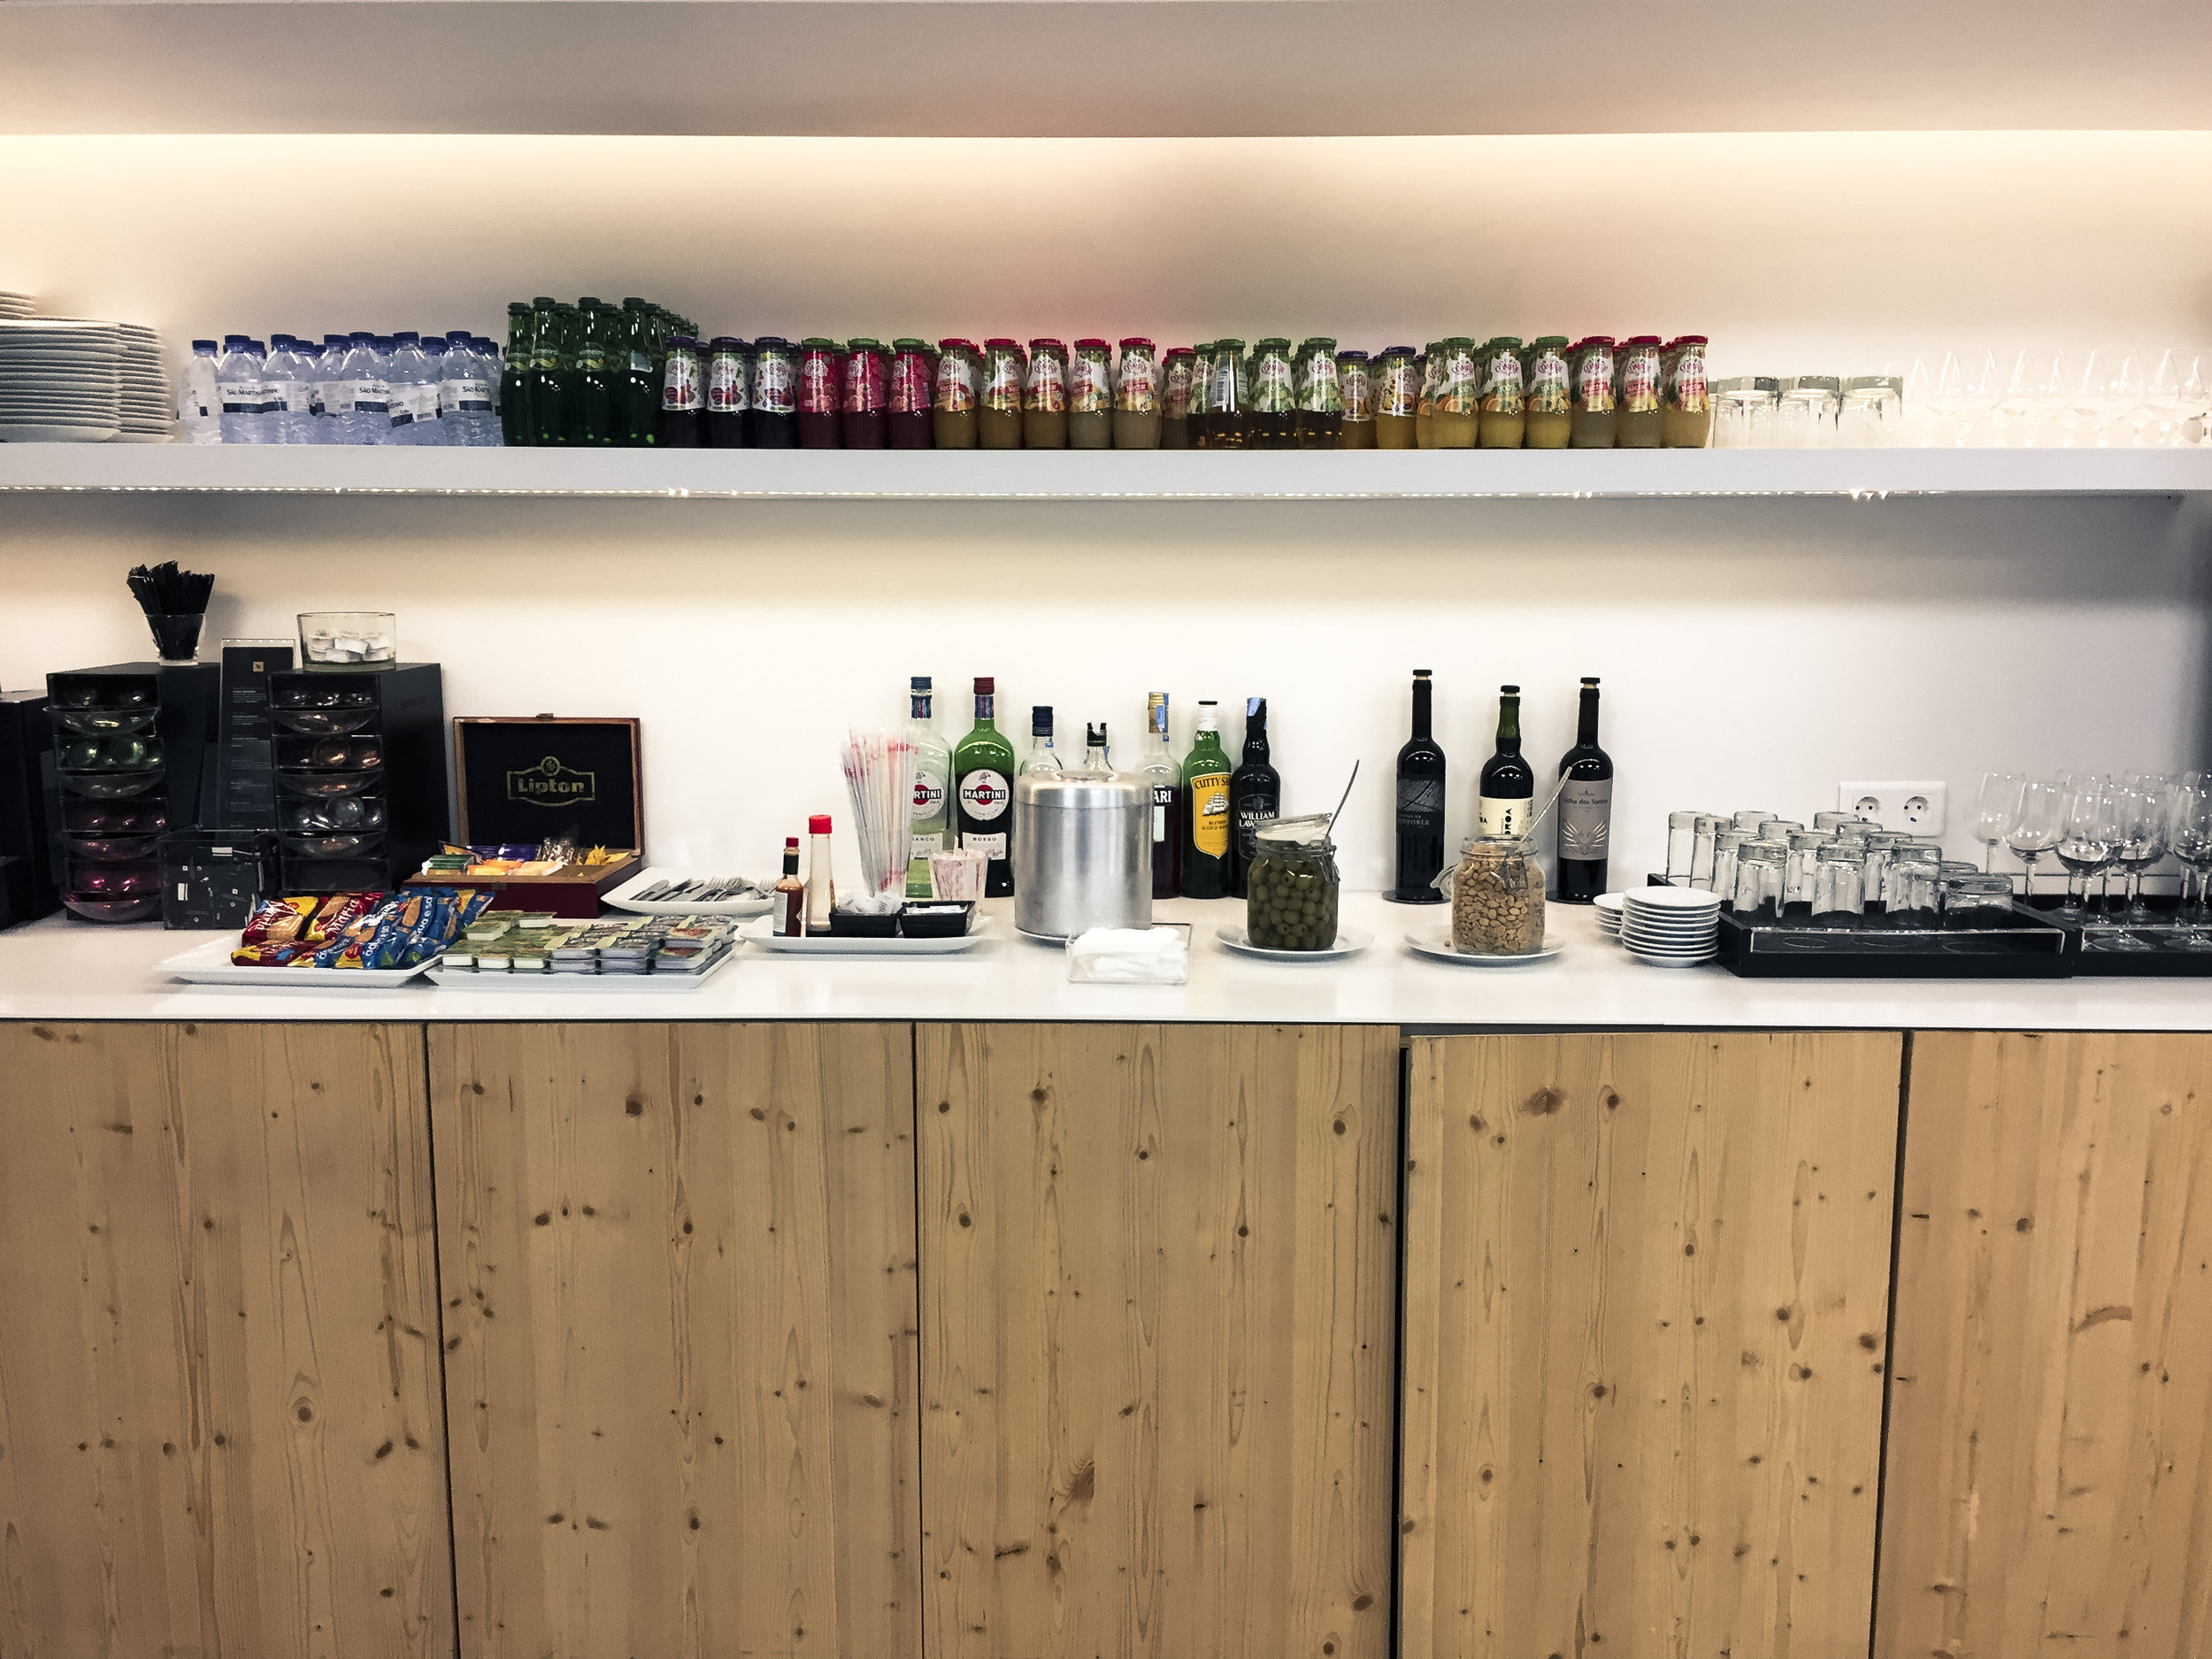 Food and Drink selection